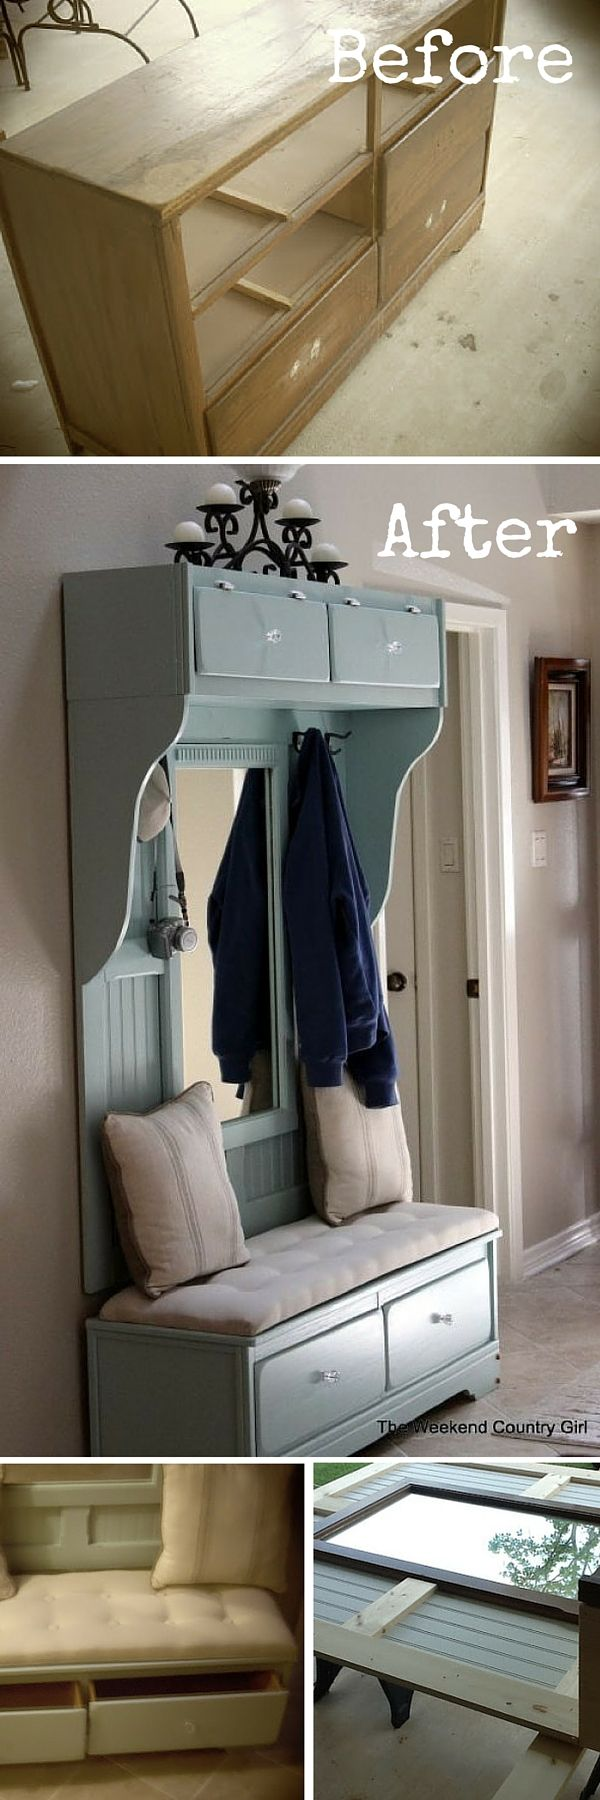 Check out the tutorial: #DIY Turn a Dresser into a Mudroom Bench #crafts